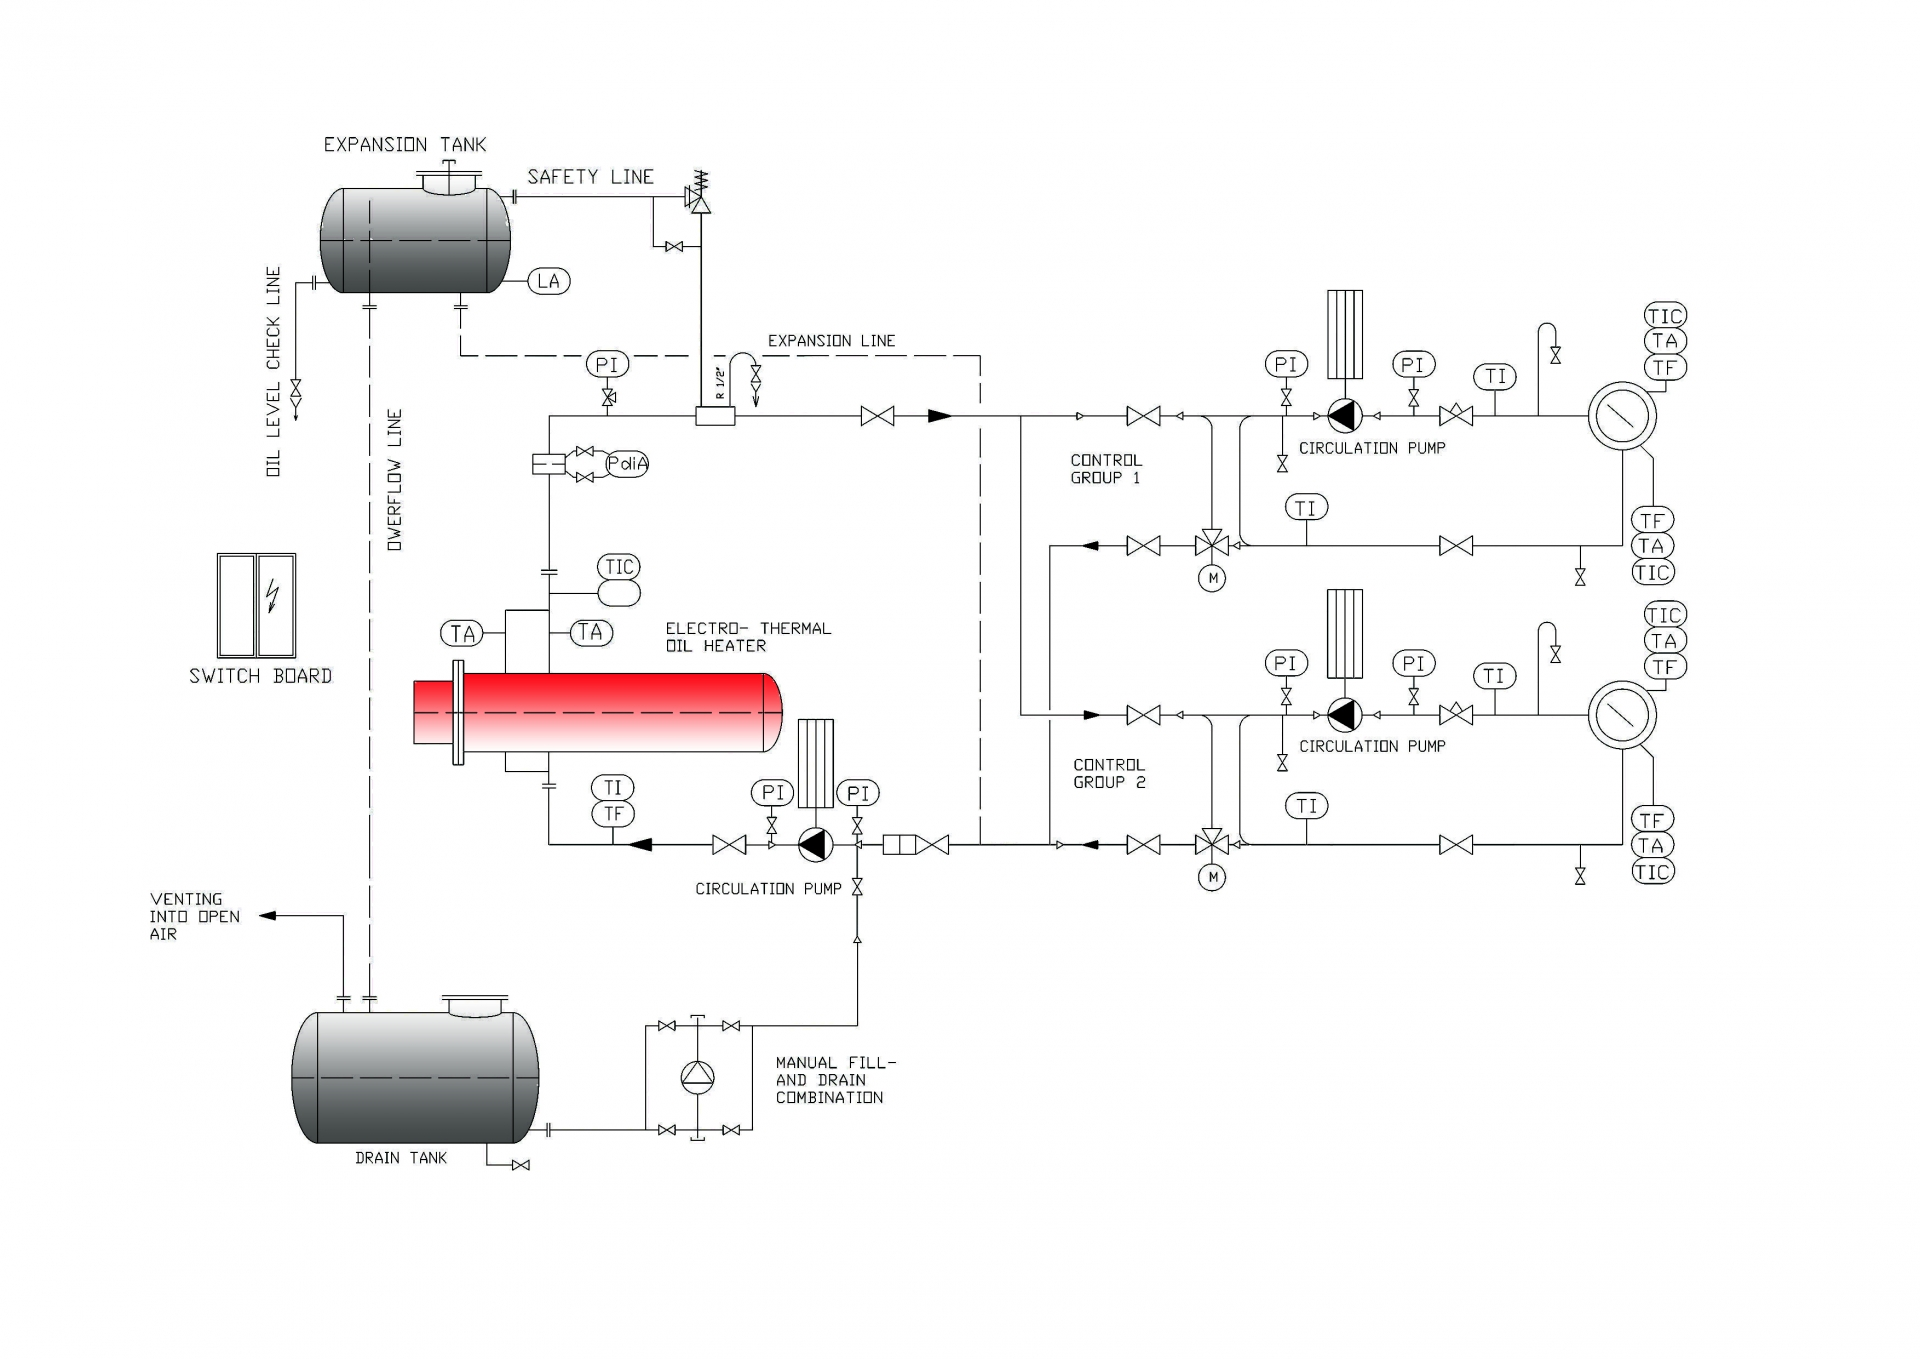 Electro Fluid Heater Gesab Gteborg Energy Systems Ab Process Flow Diagram Images Engineering With Flu